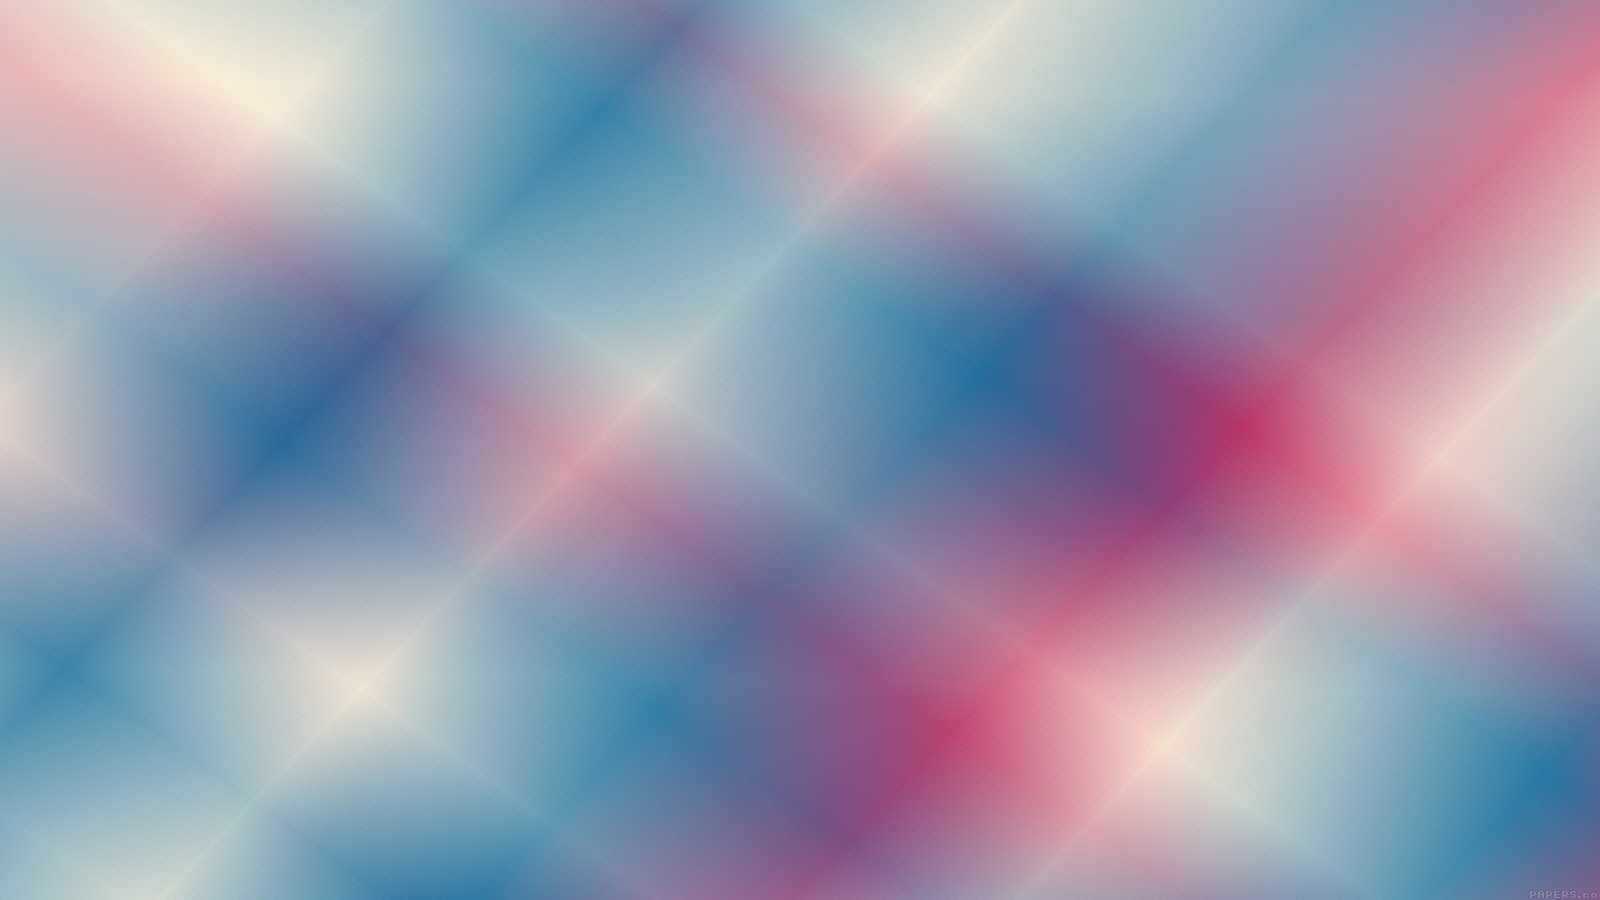 Vi37-blurry-lines-blue-red-pattern